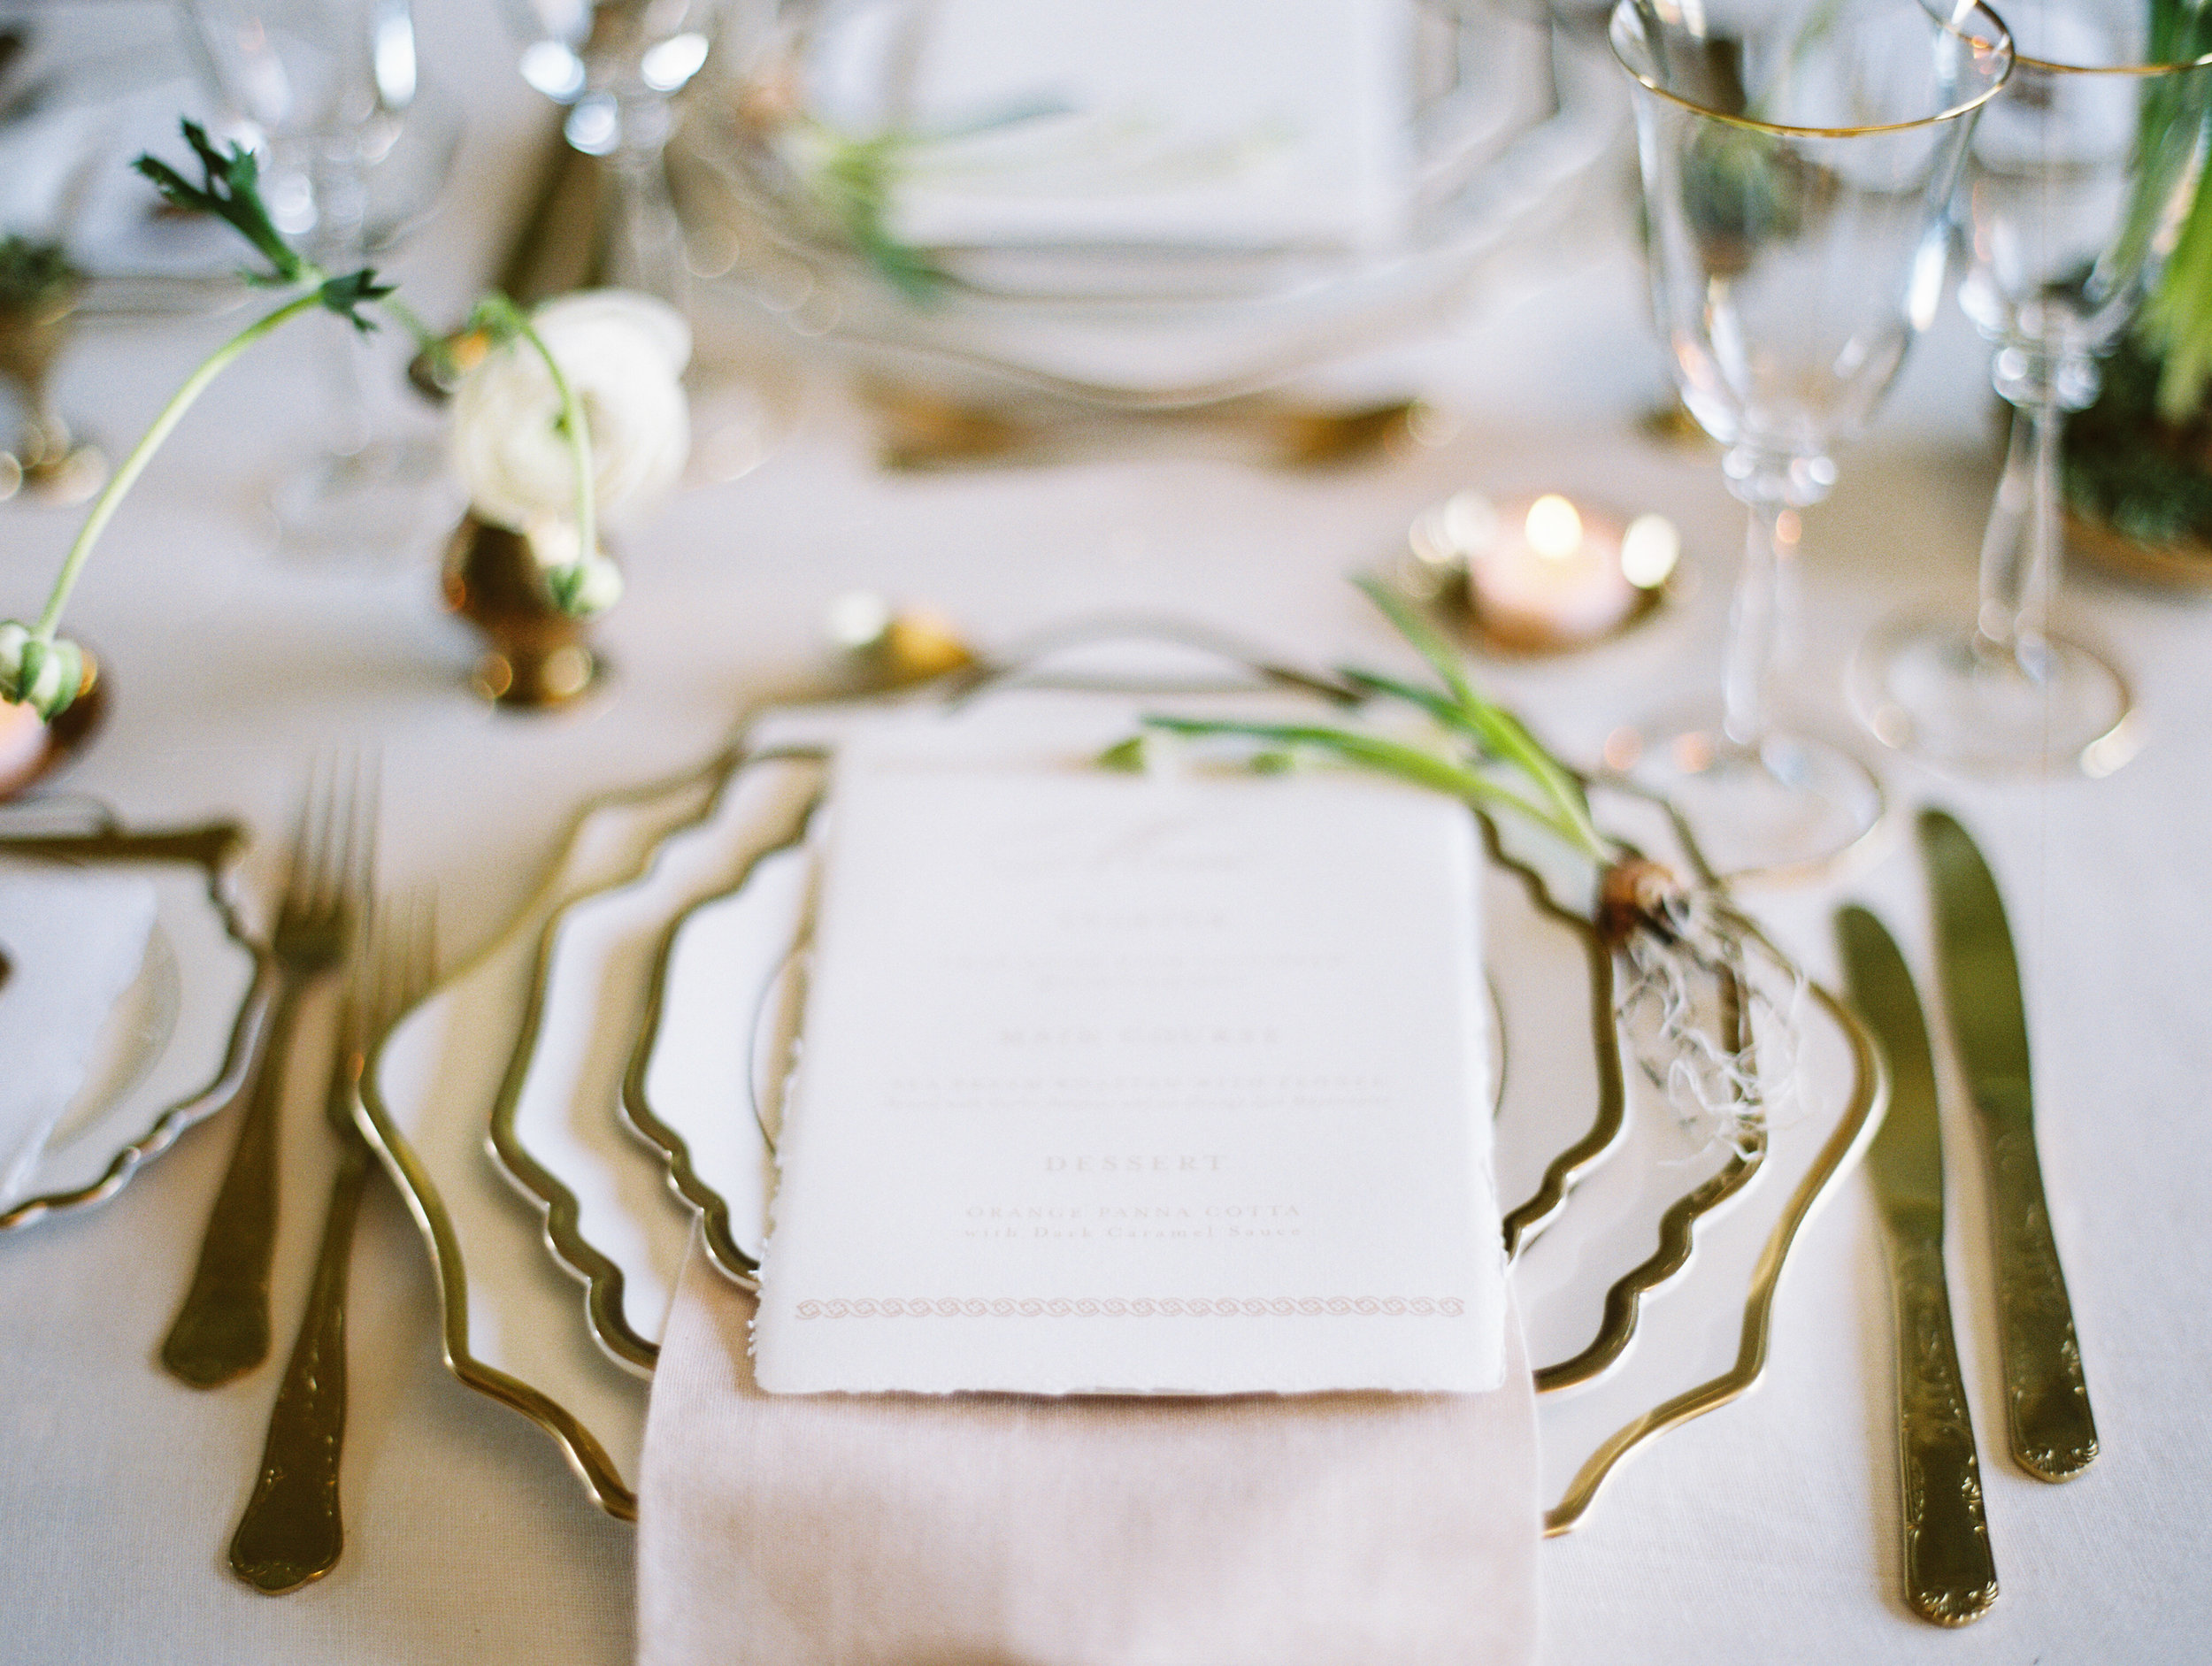 The Timeless Stylist-White and Gold Plates-Gold Cutlery